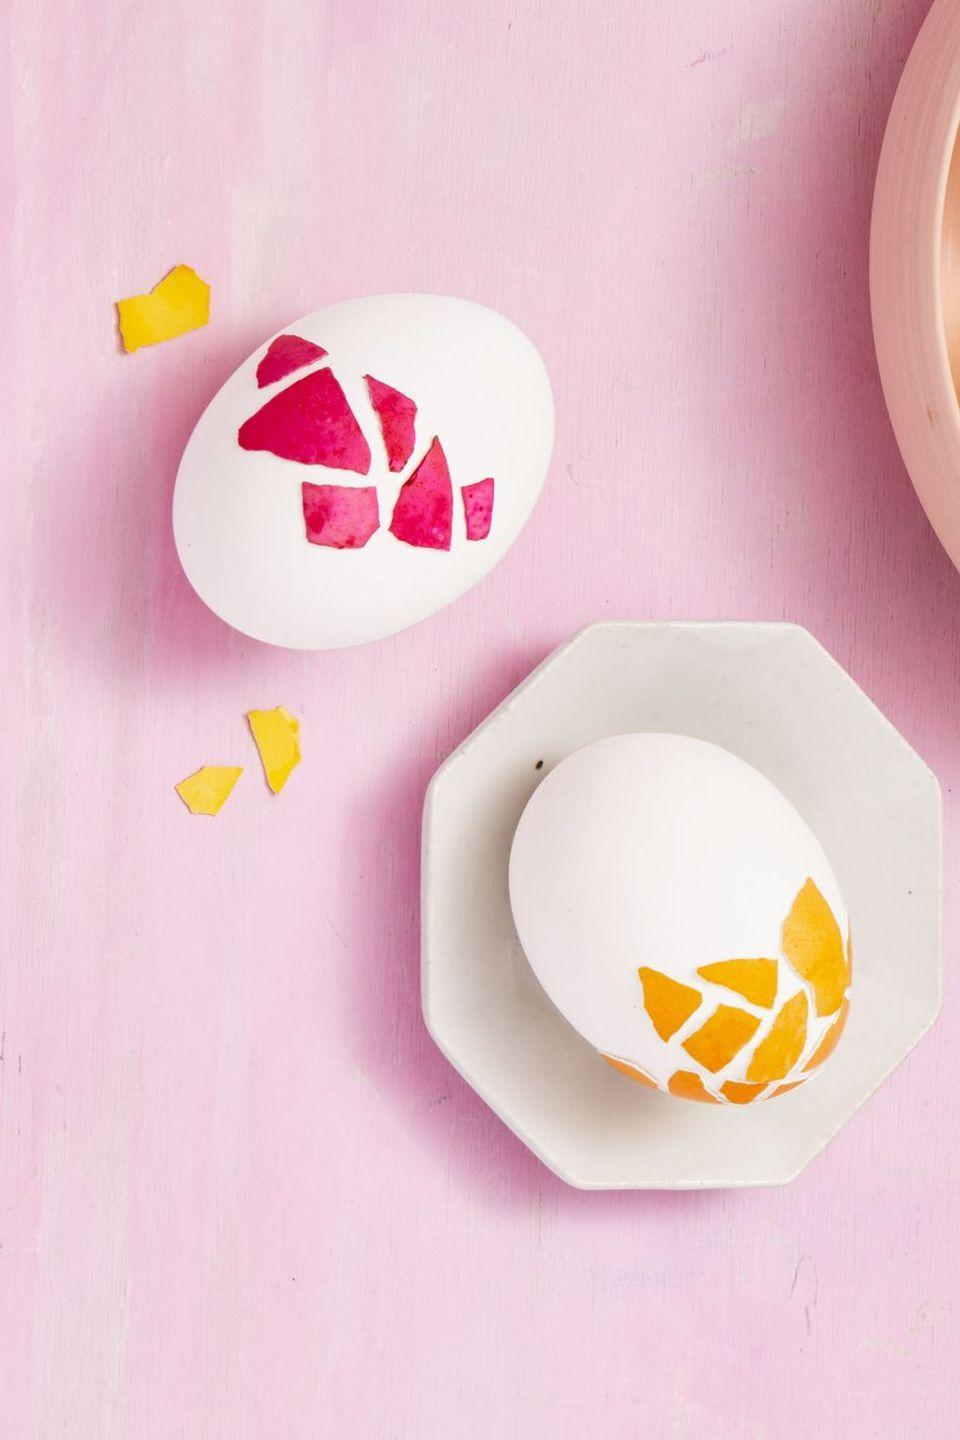 "<p>Use discarded shells, washi tape, or simple construction paper to create a mosaic Easter egg. </p><p><em>Get the tutorial at <a href=""https://www.goodhousekeeping.com/holidays/easter-ideas/g419/easter-egg-decorating-ideas/?slide=10"" rel=""nofollow noopener"" target=""_blank"" data-ylk=""slk:Good Housekeeping"" class=""link rapid-noclick-resp"">Good Housekeeping</a>. </em></p>"